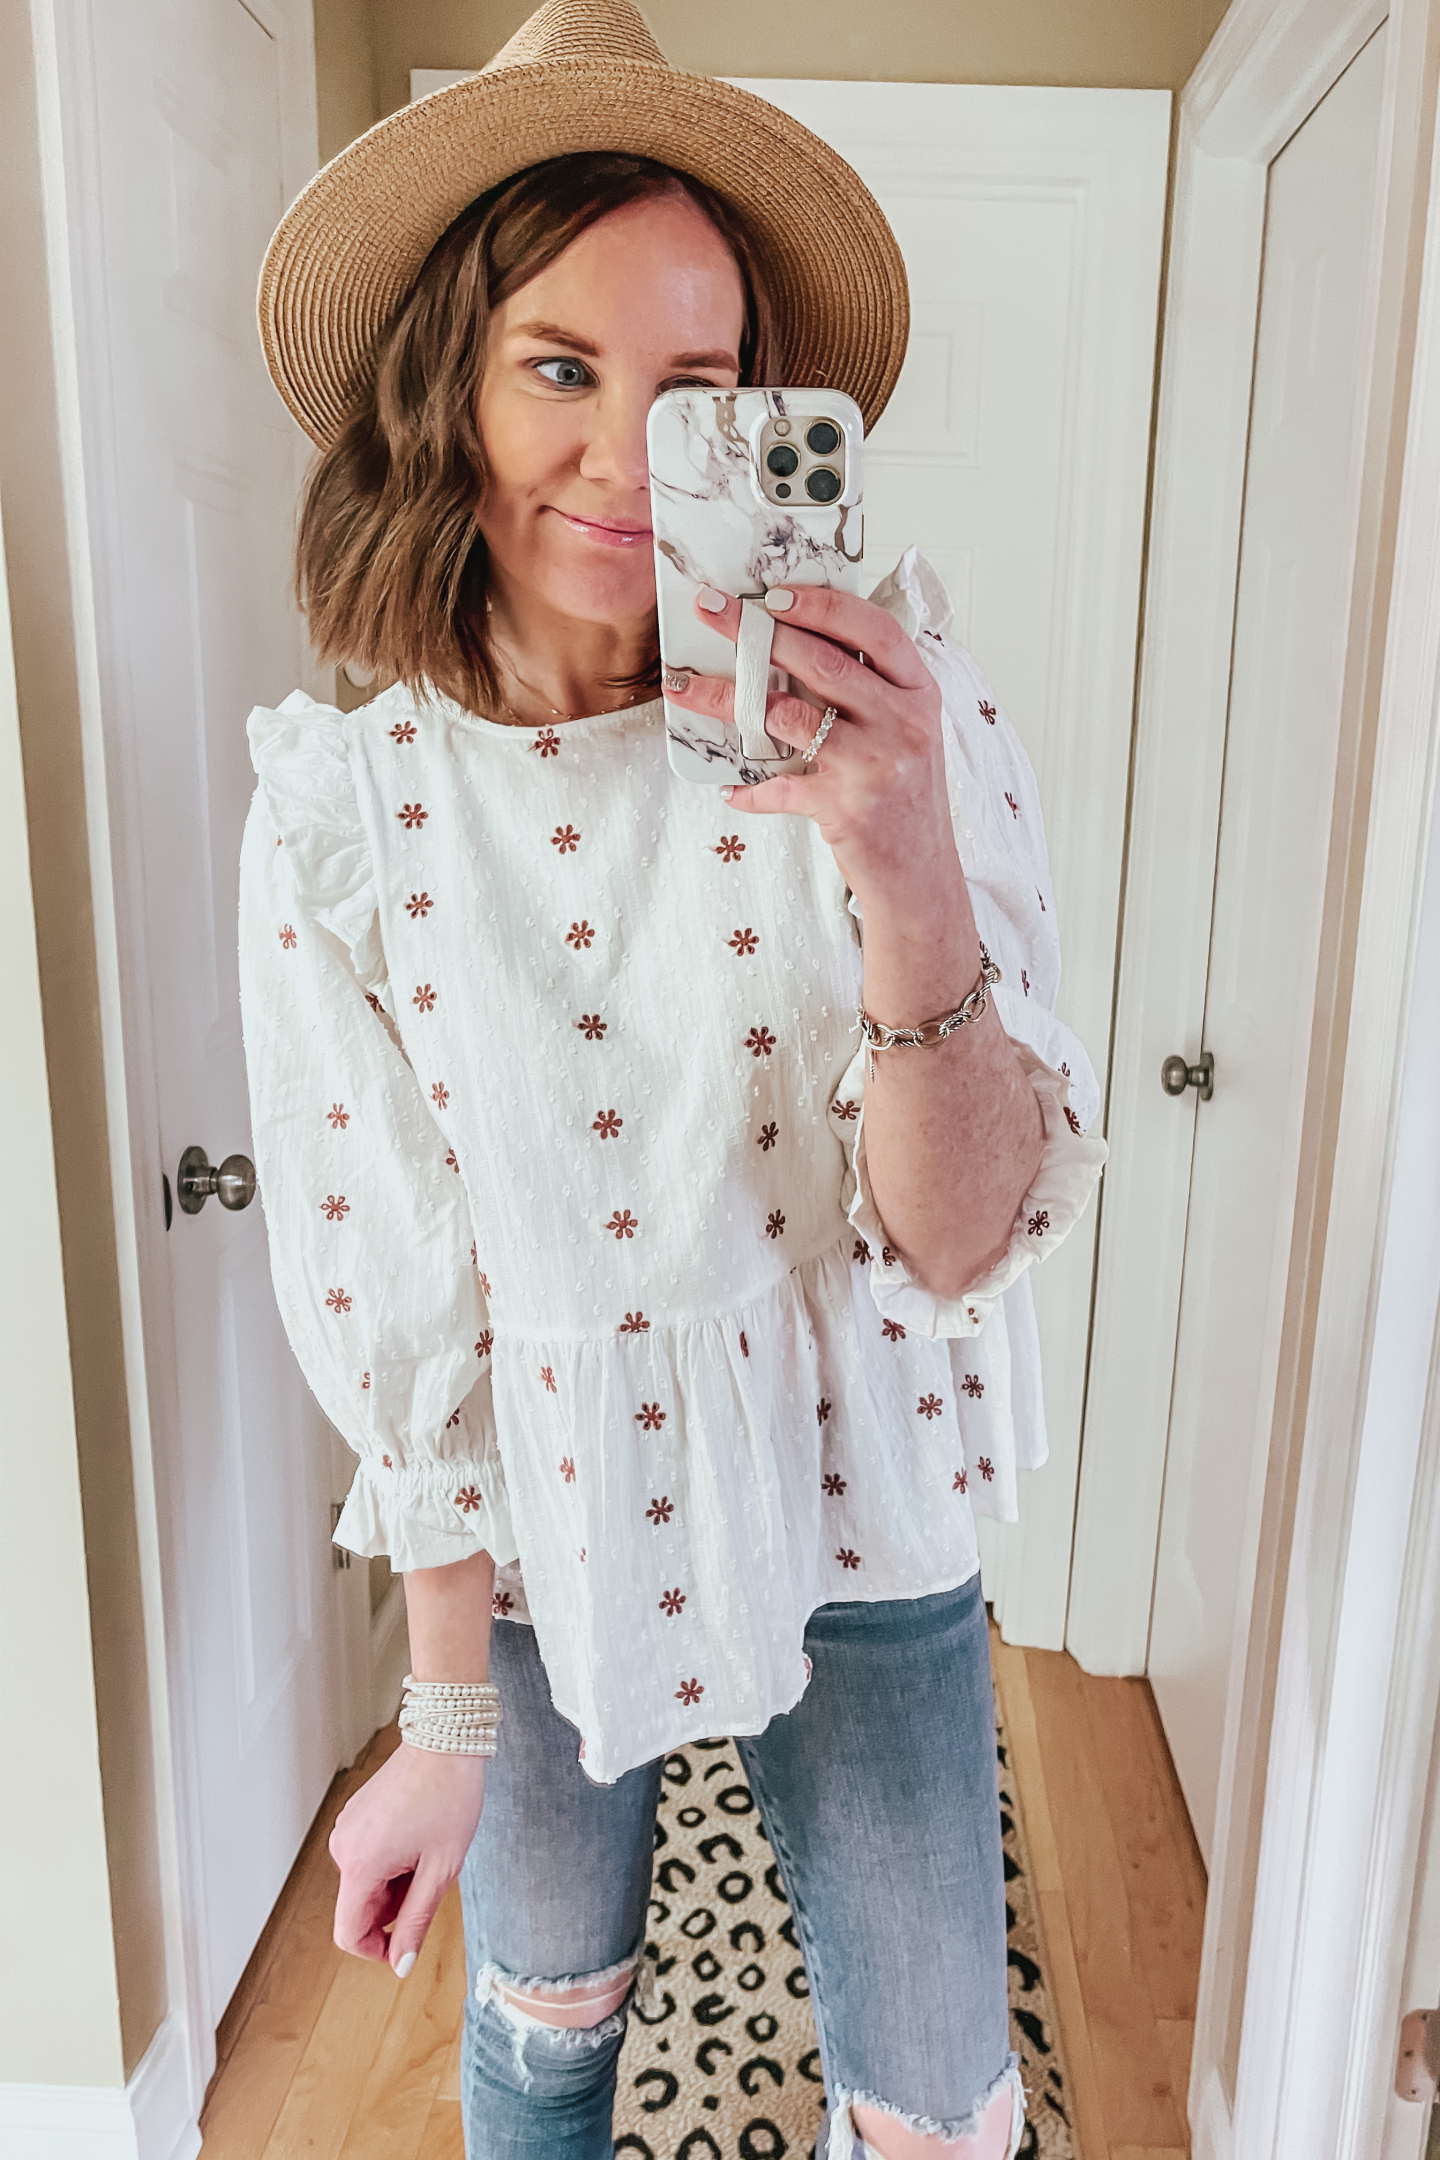 The Best Target Spring Fashion Finds: March 2021